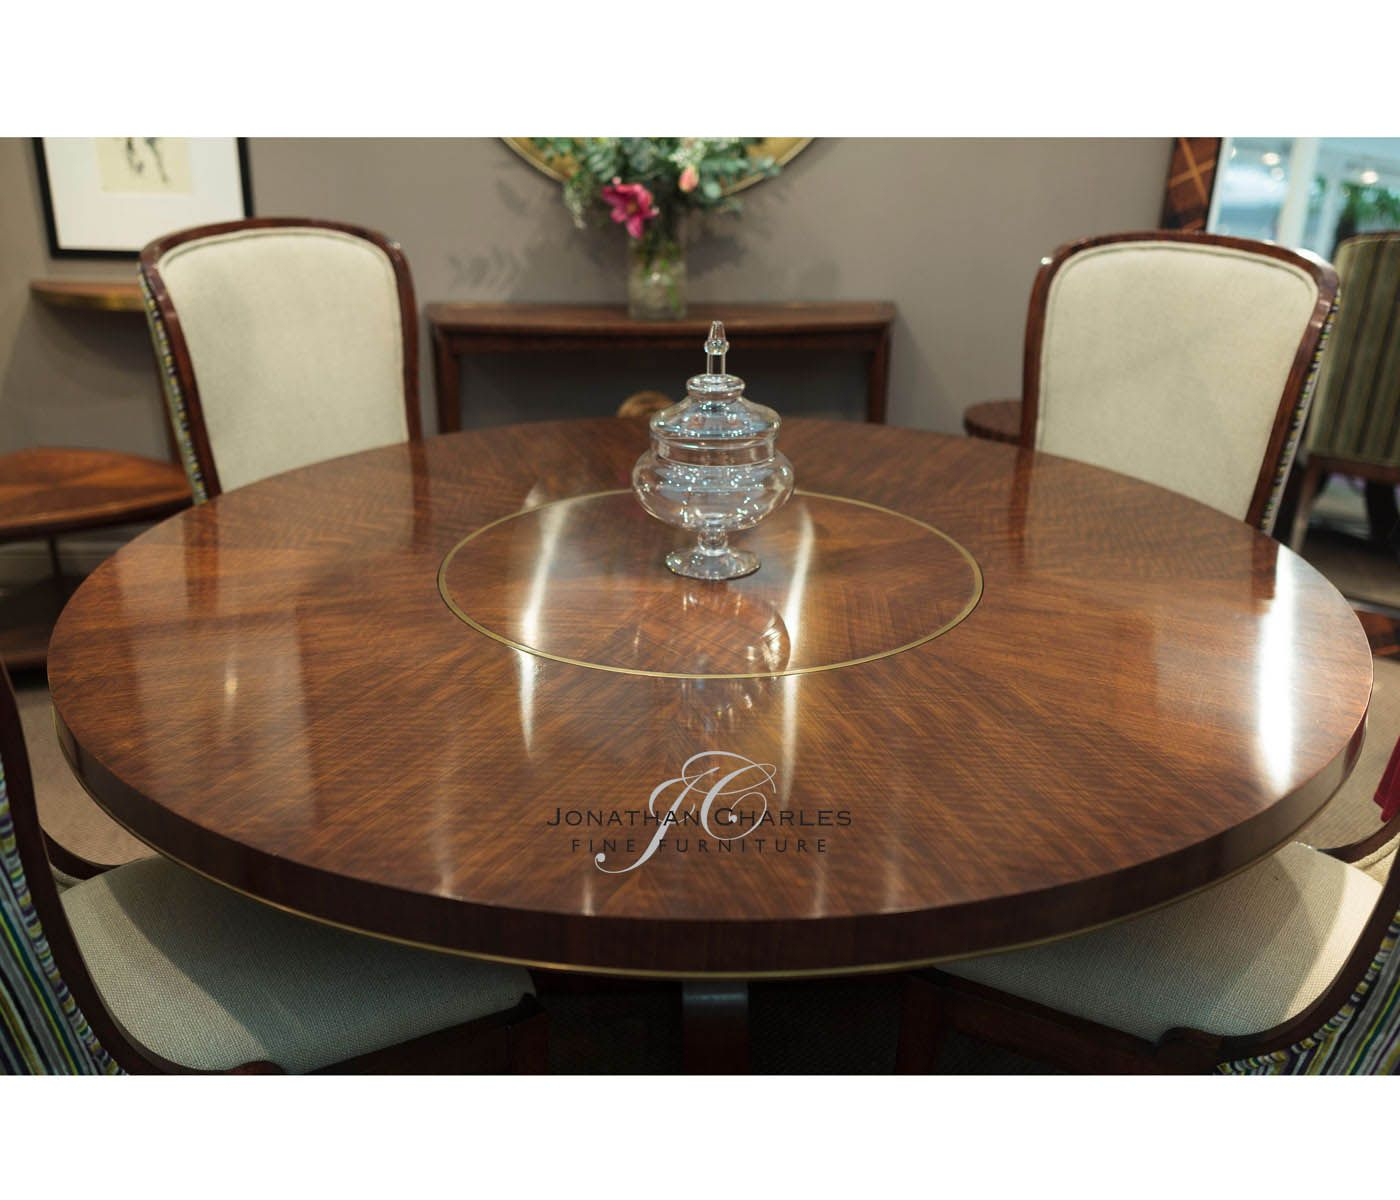 Hyedua circular dining table by Jonathan Charles Fine Furniture